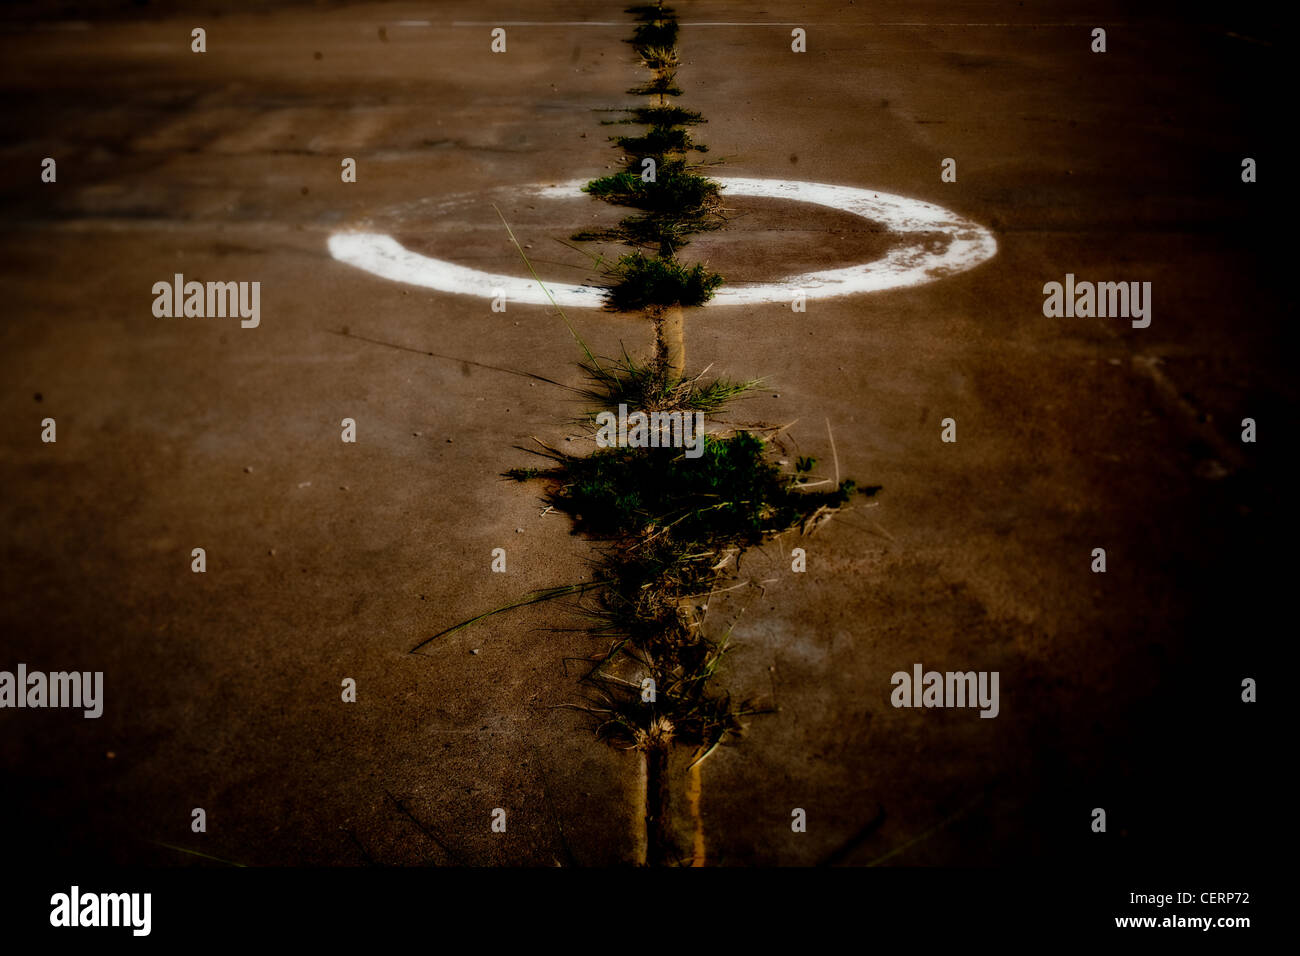 Crack in the sidewalk where plants grow in parking lot, night time. - Stock Image